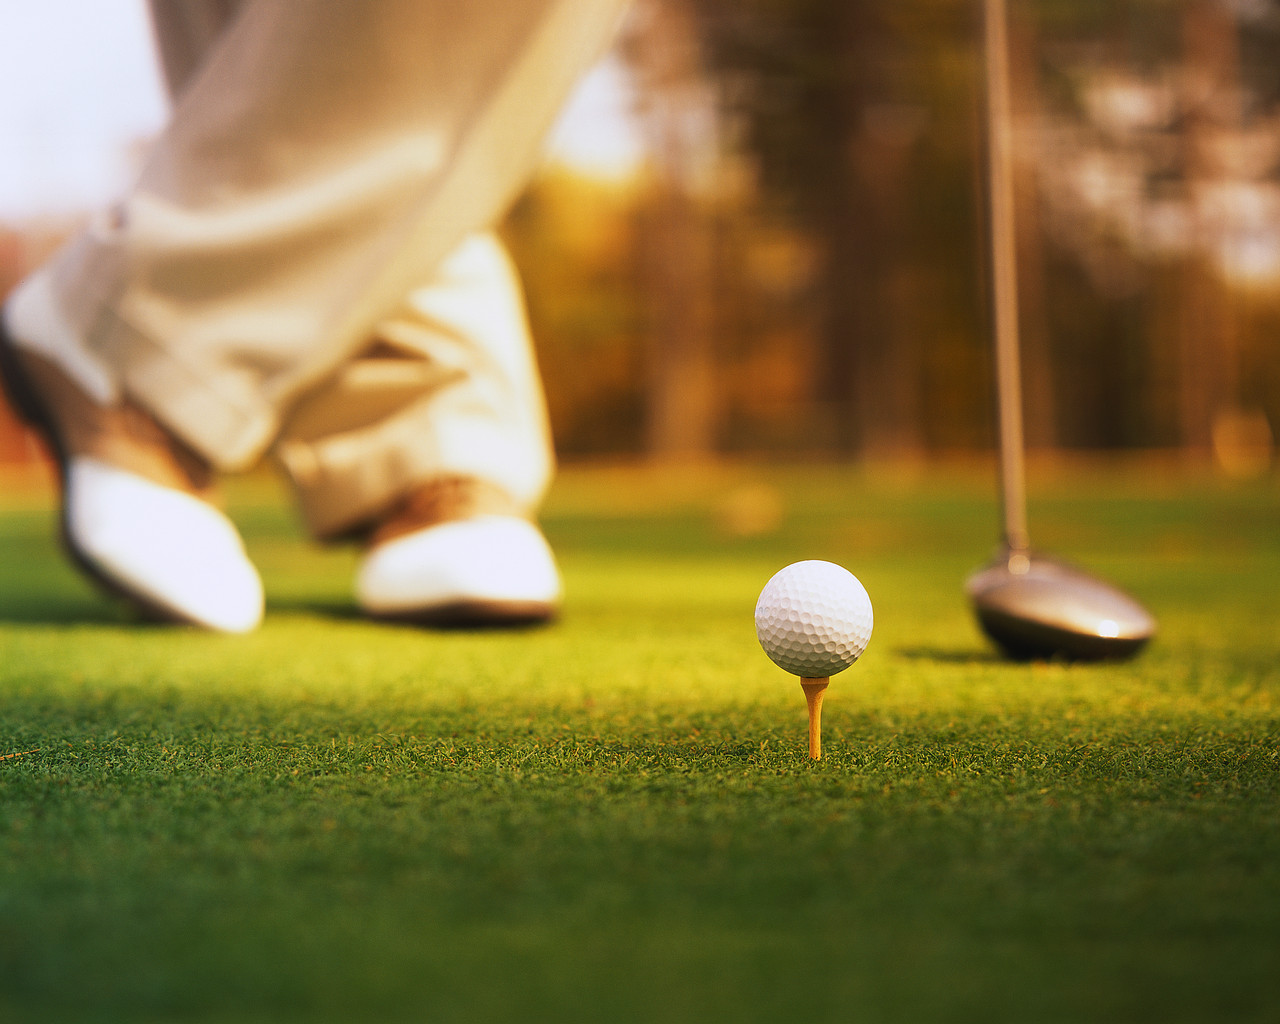 Orthodoxy and Golf | me, thinking out loud